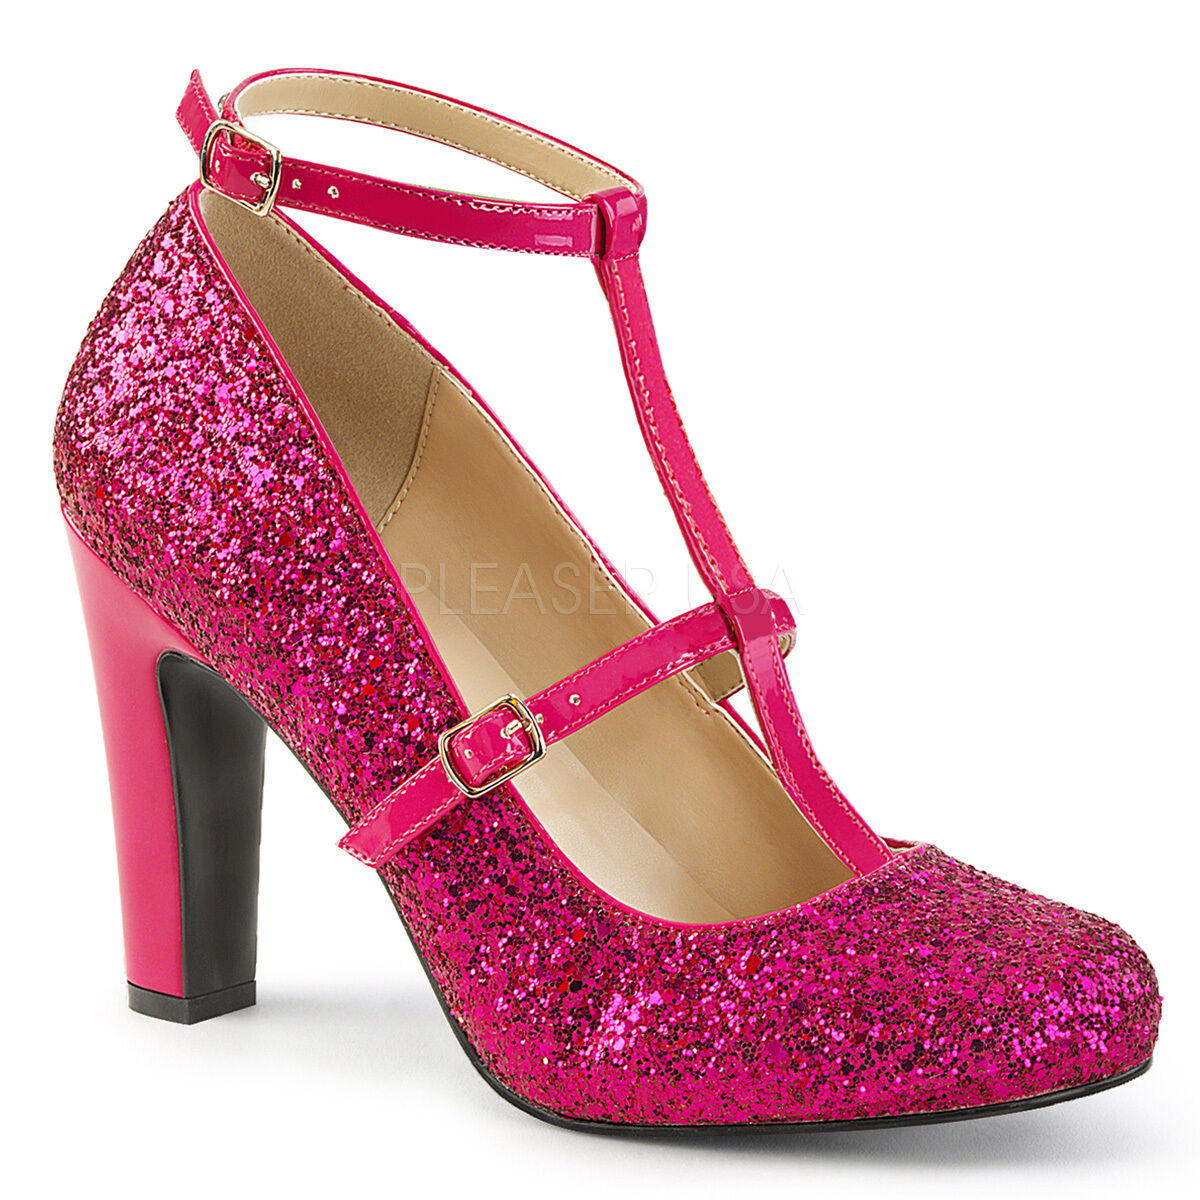 Pleaser Rosa Label QUEEN-01 Round Toe Toe Toe Pump With Glitters Größe 9-16 115ccf